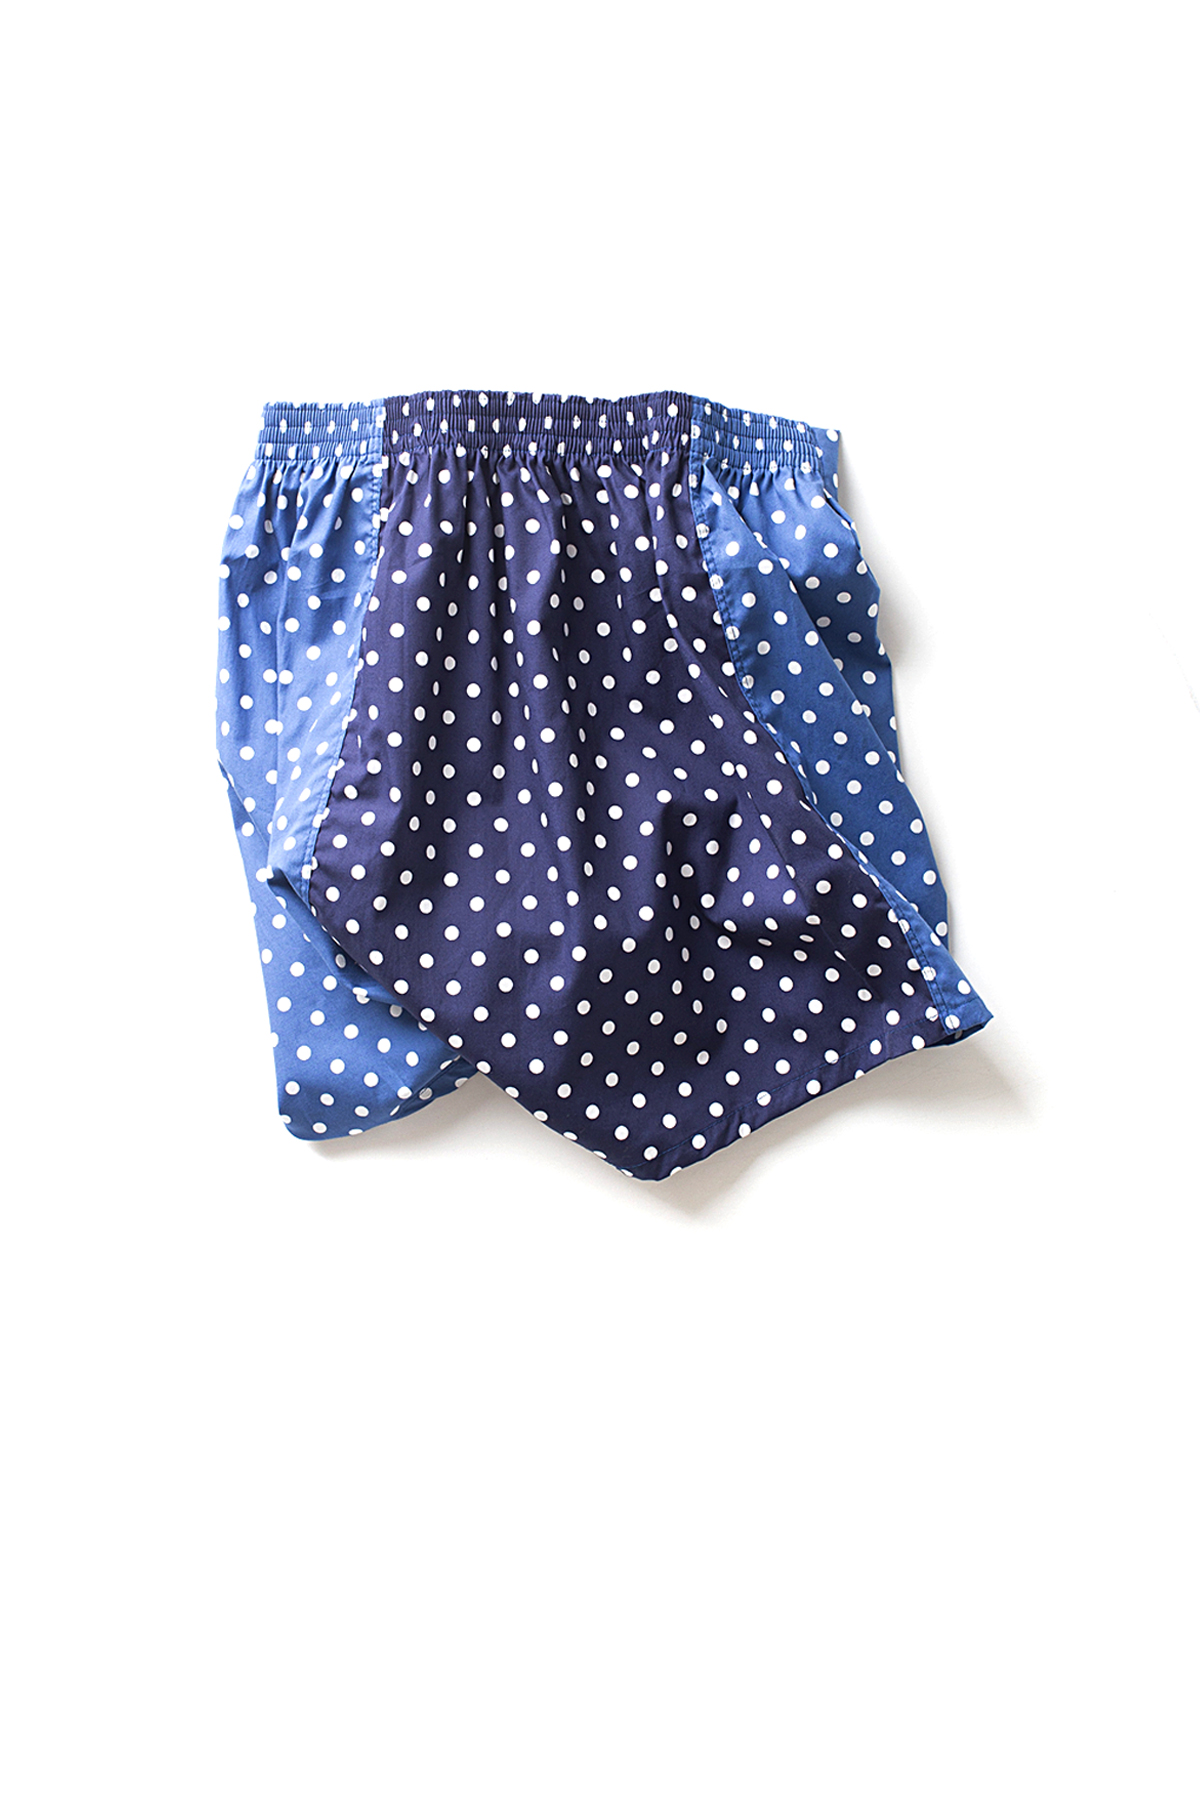 NAPALS : Crazy Dot Box Trunks (NVY x BLU)